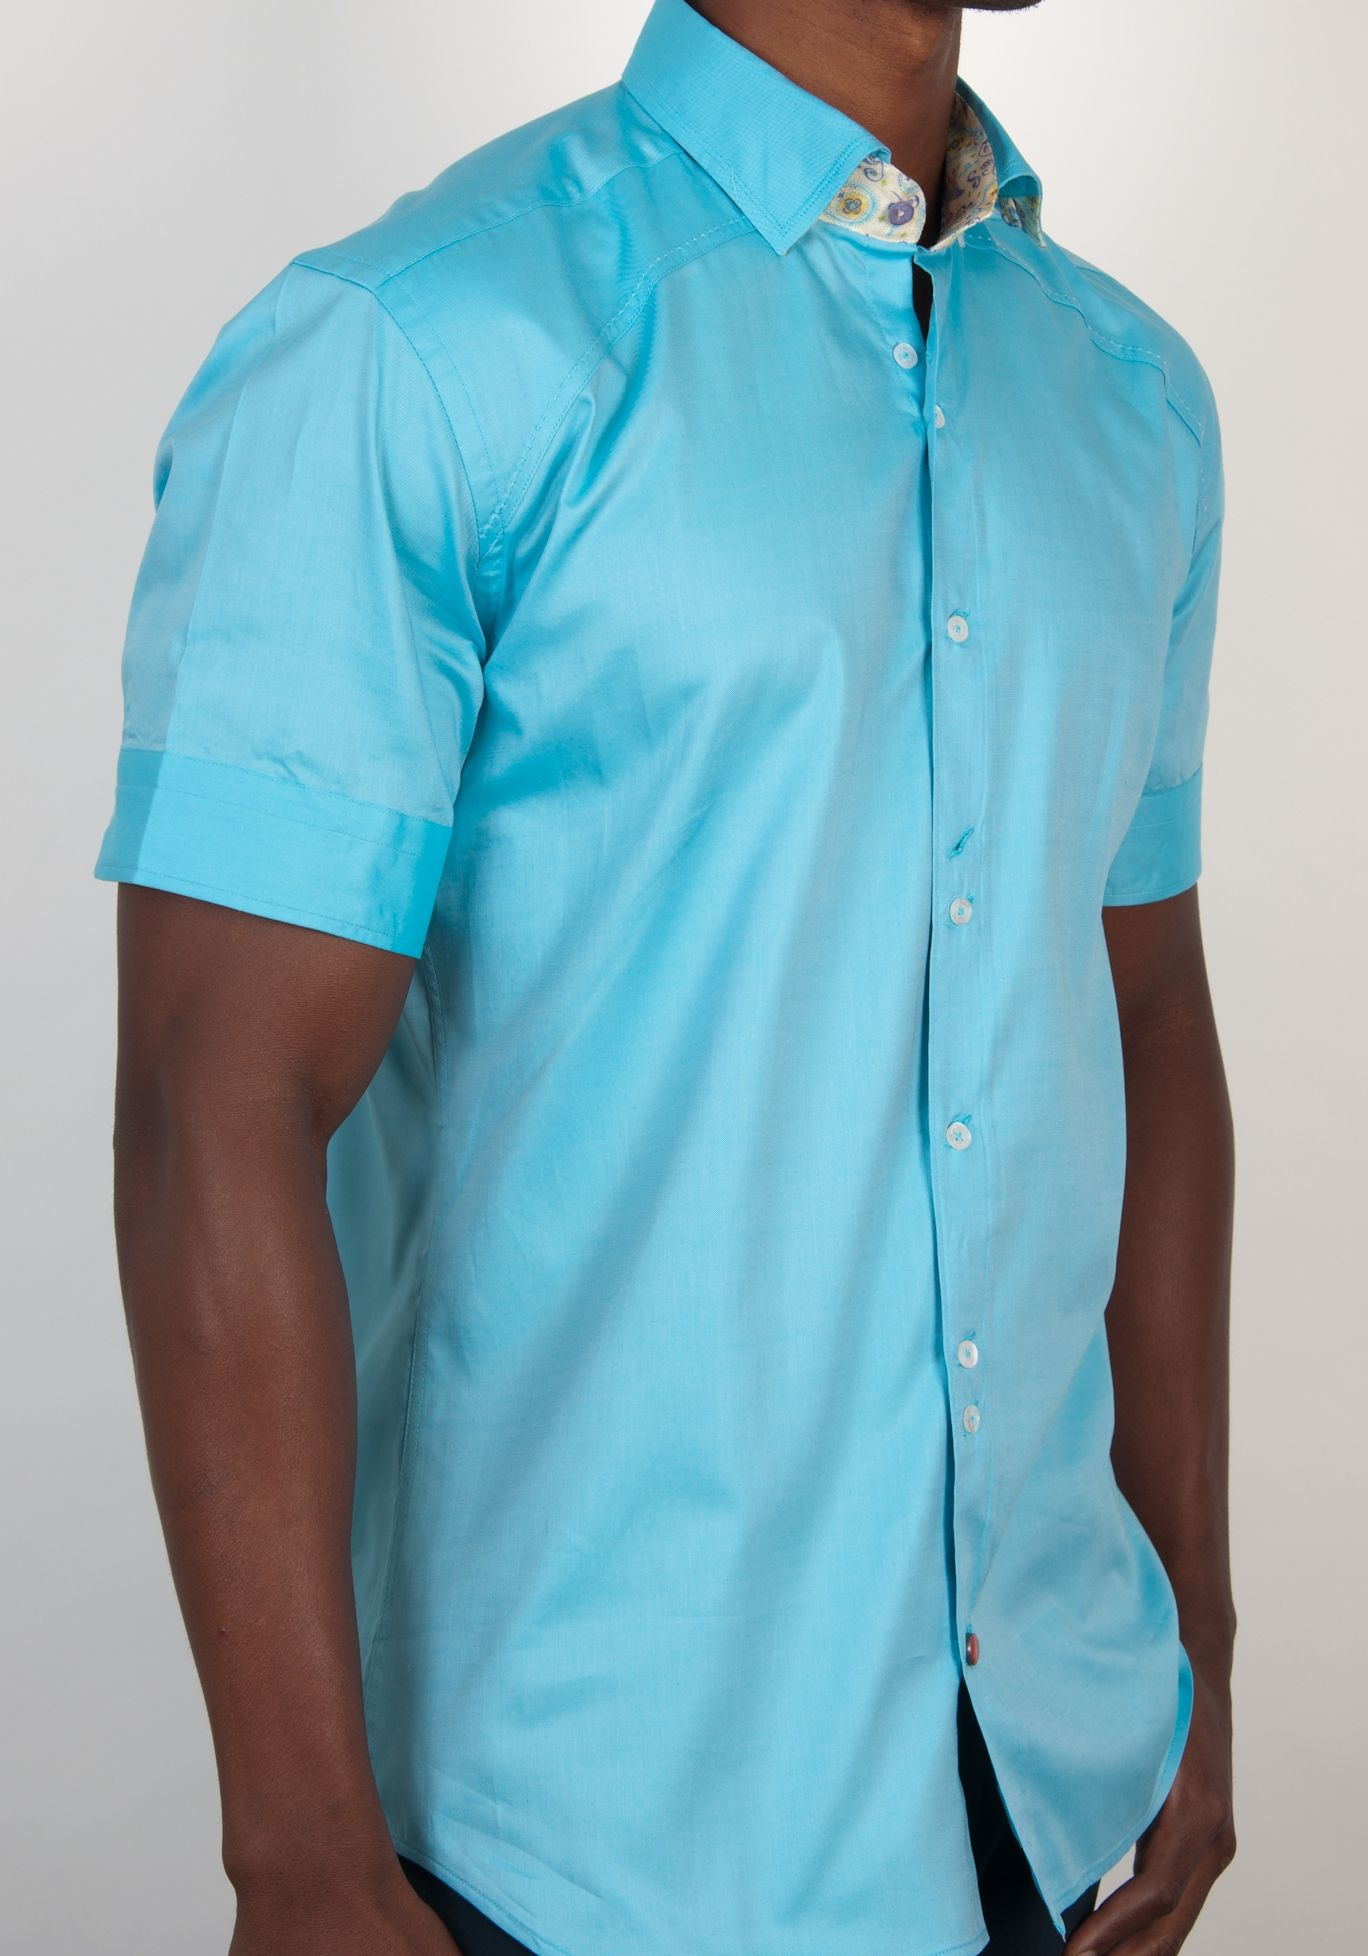 Turquoise oxford short sleeve button down shirt with light yellow ...